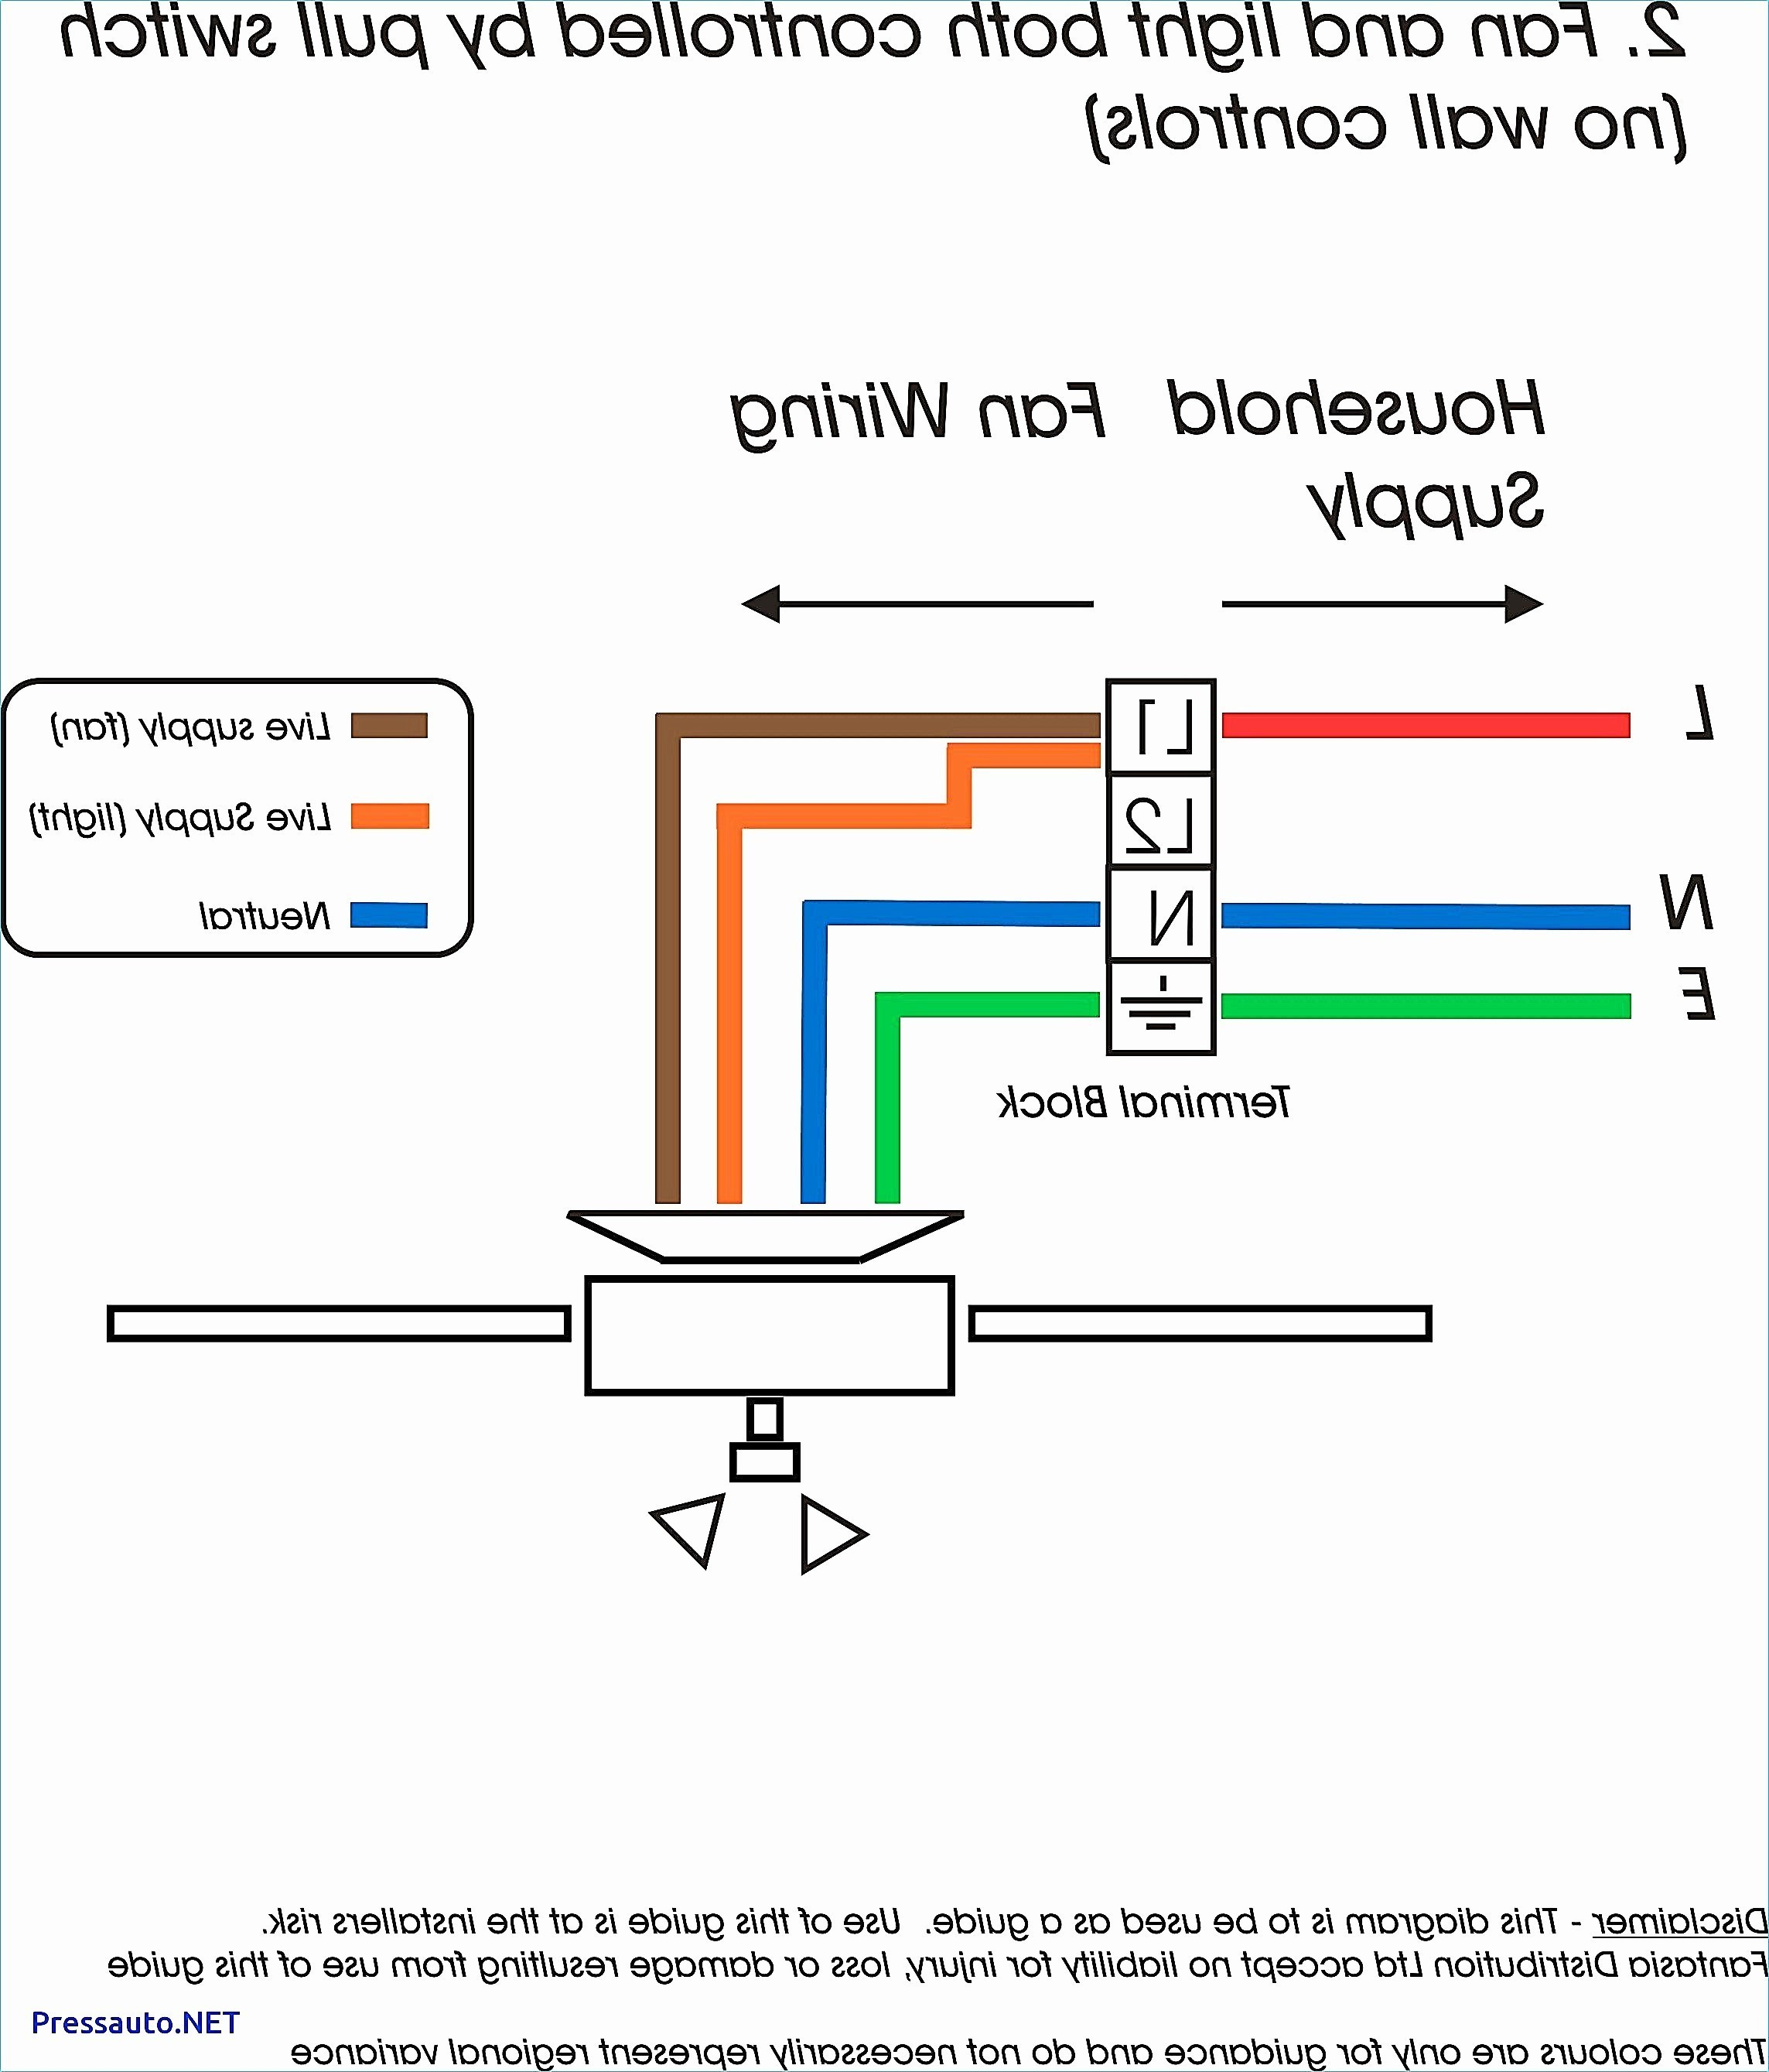 recessed lighting wiring diagram Collection Wiring Diagram Recessed Lighting Valid Recessed Lighting Wiring Diagram Awesome